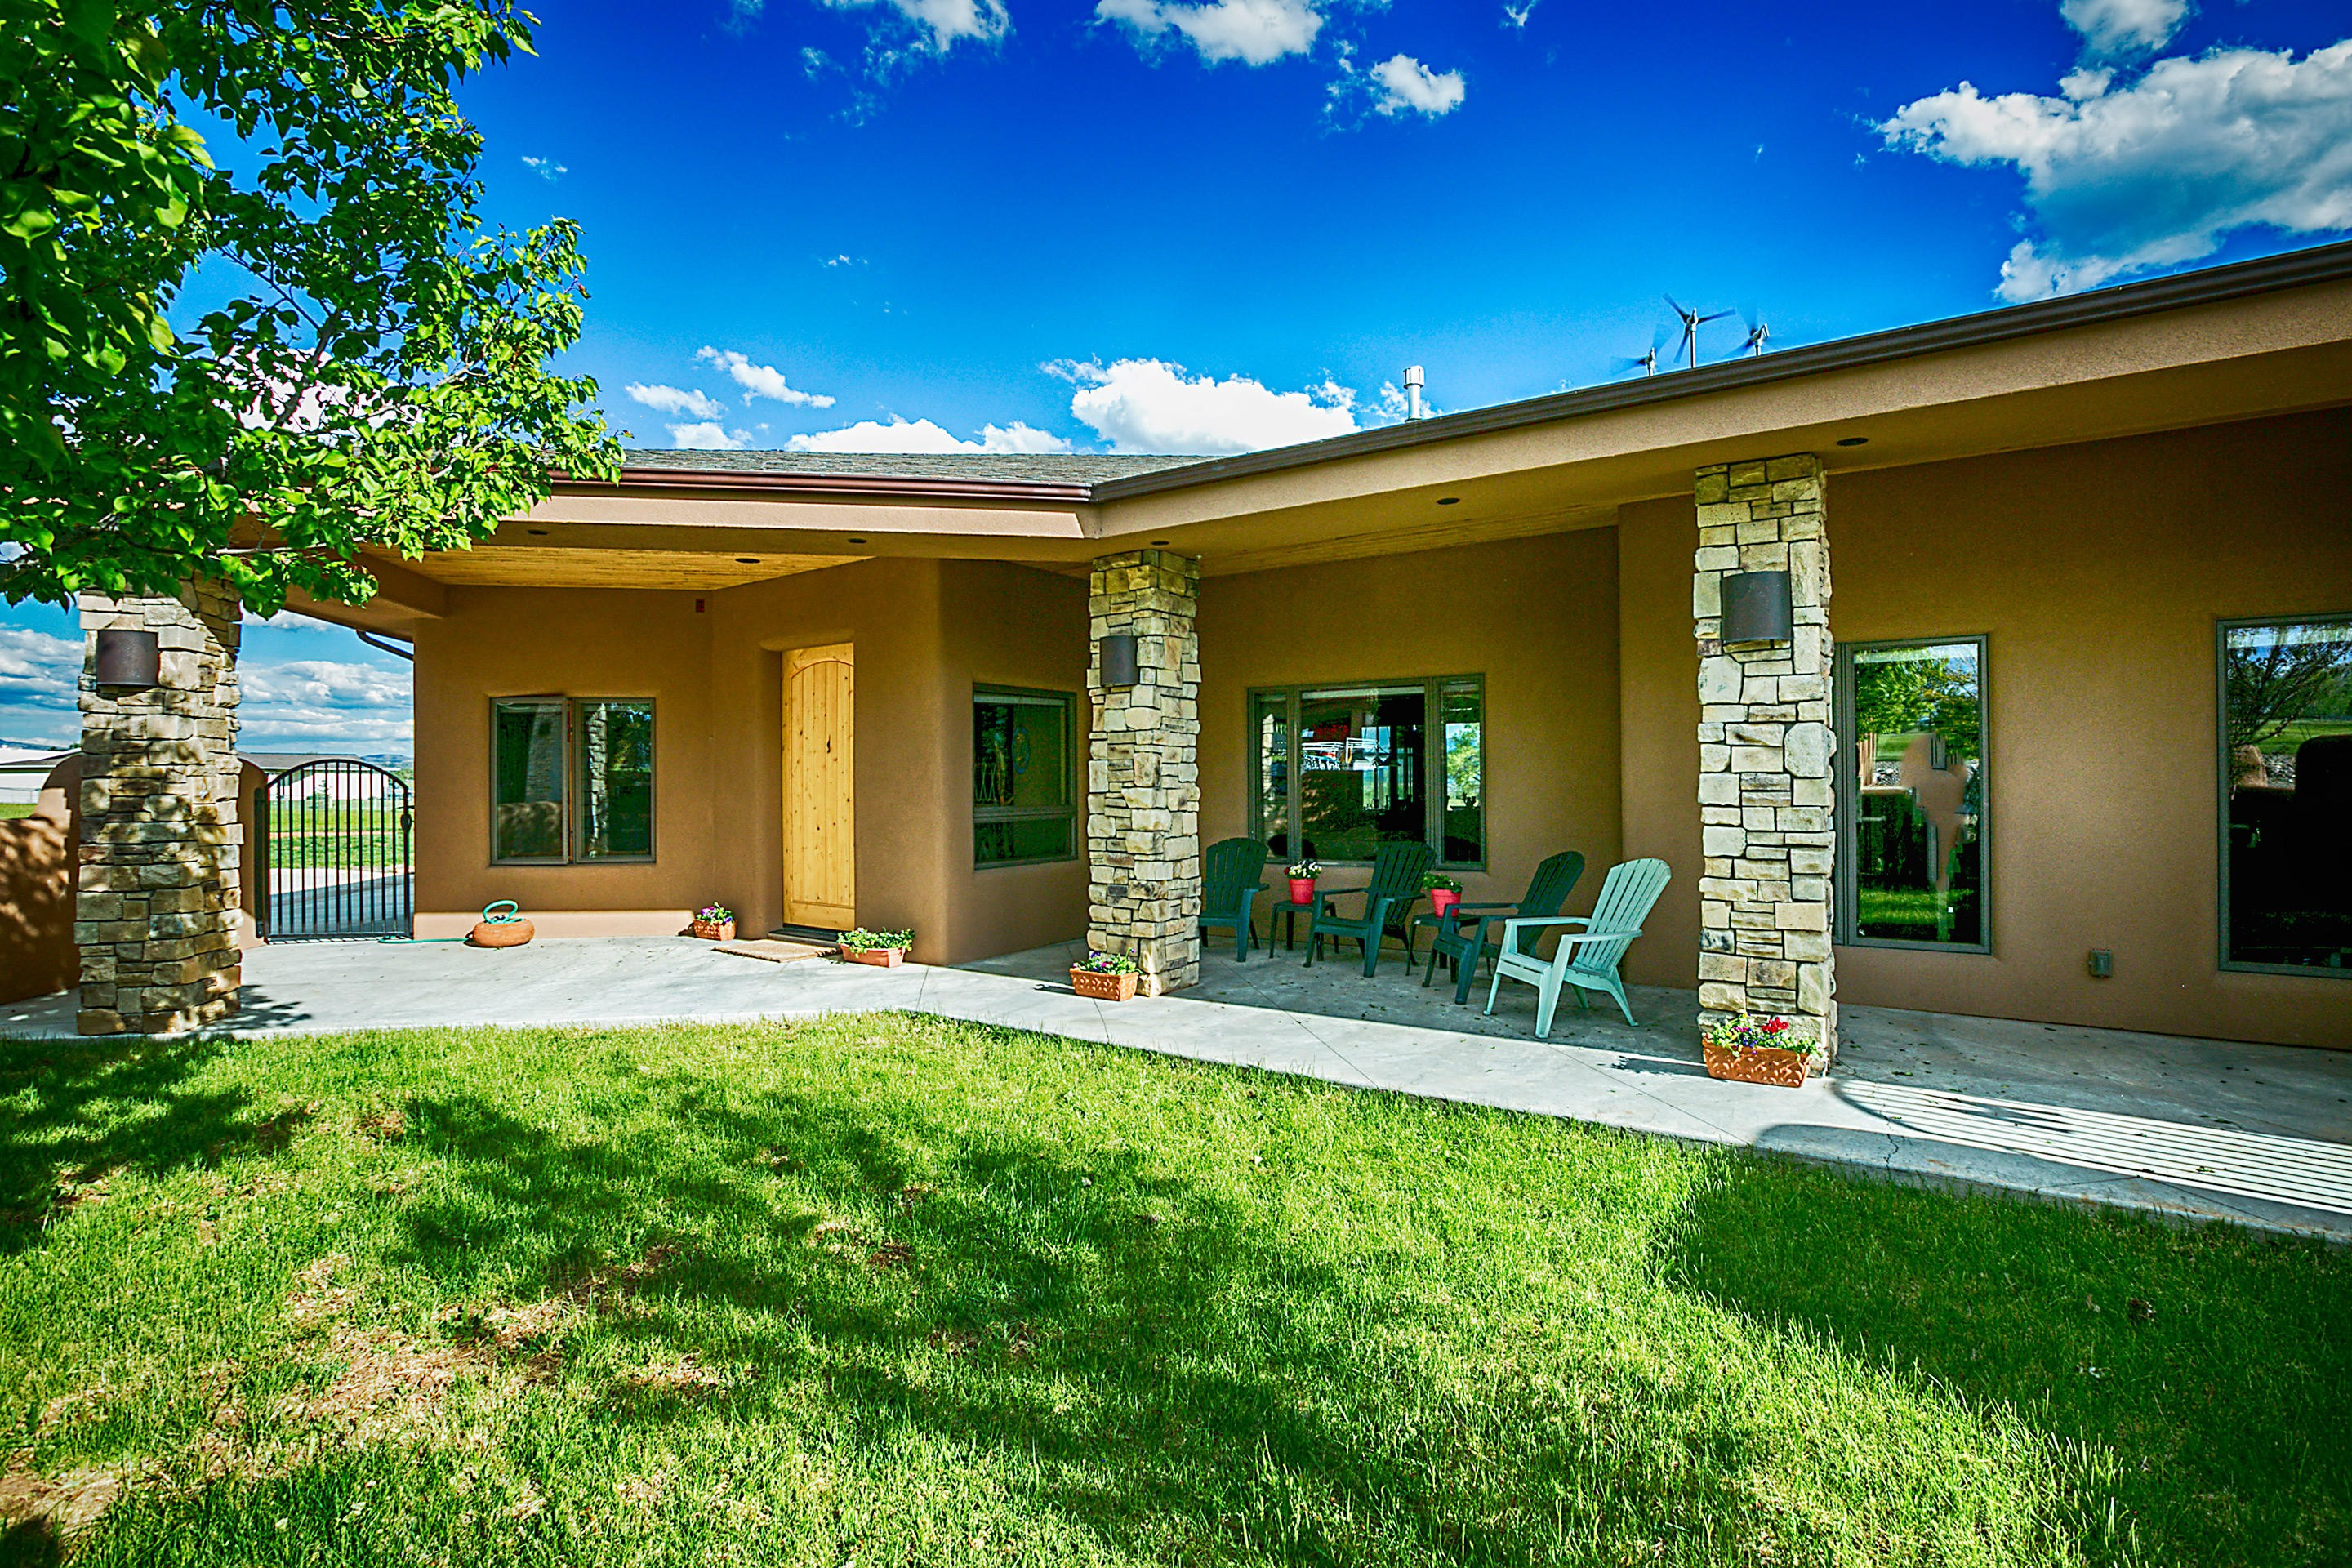 13080 27.6 road a luxury single family home for sale in dolores, colorado property id 33753 christie s international real estate